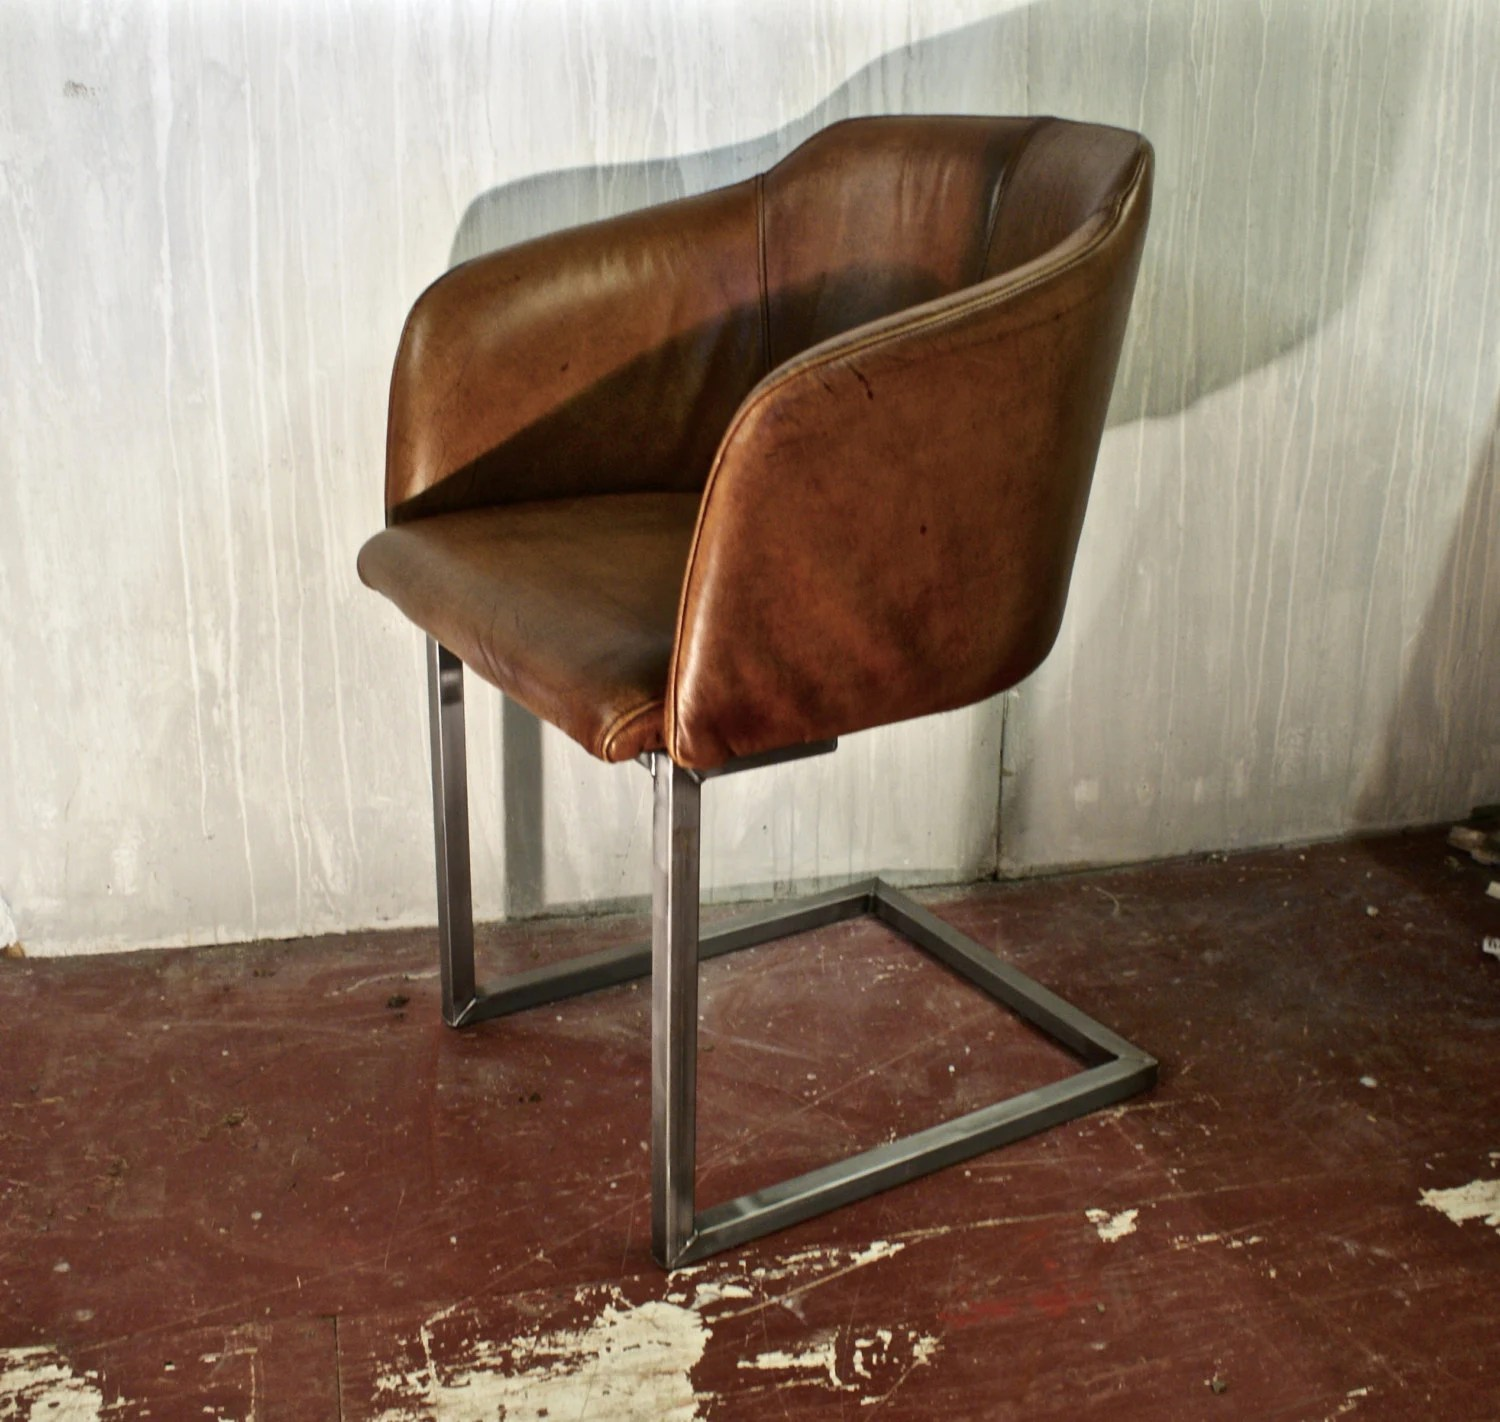 metal tub chair office replacement parts leather with a brushed steel frame